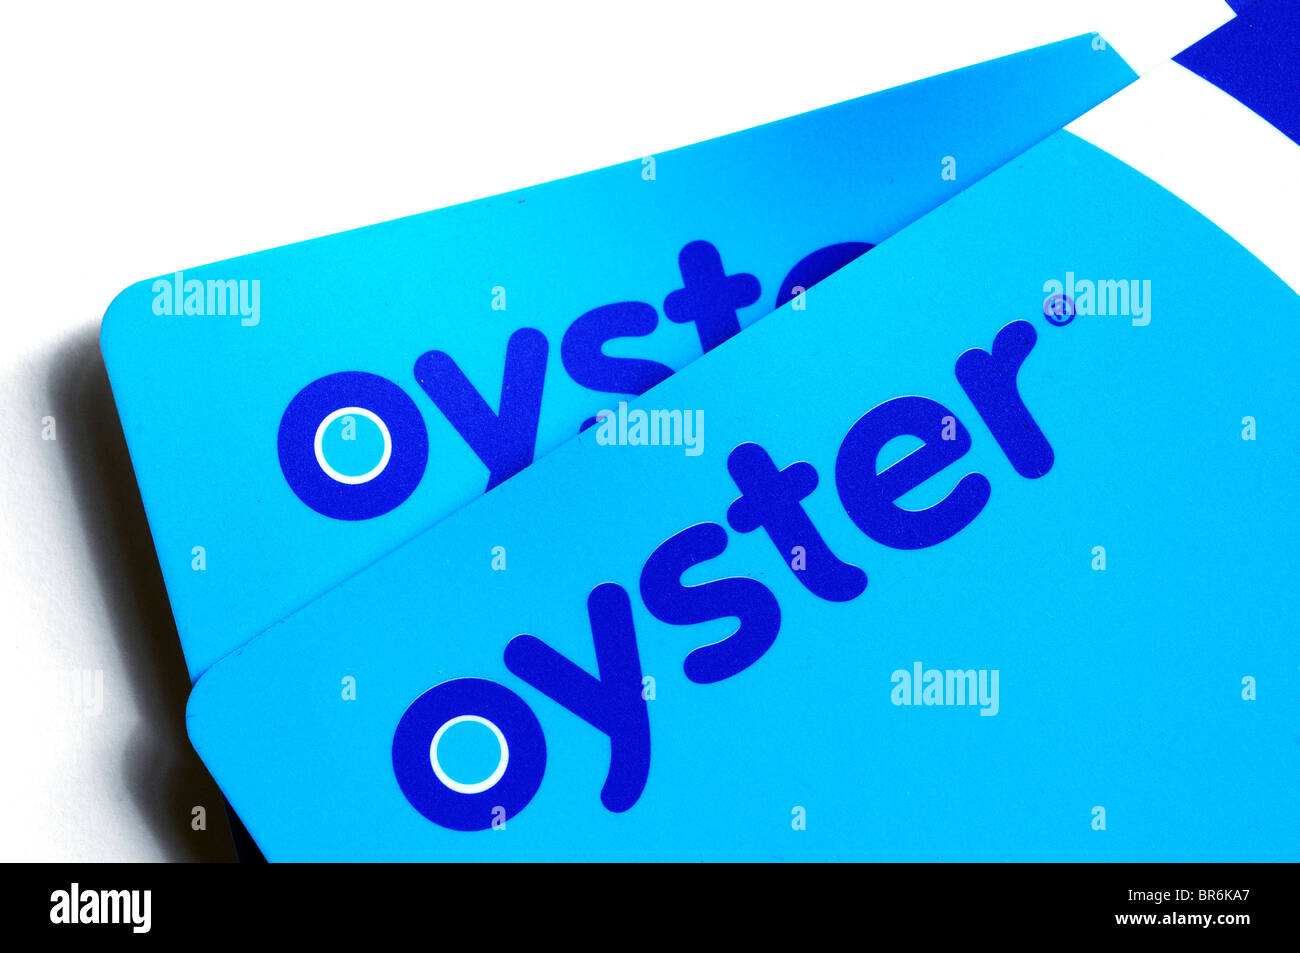 Oyster cards, the cashless payment system for use on London public transport - Stock Image